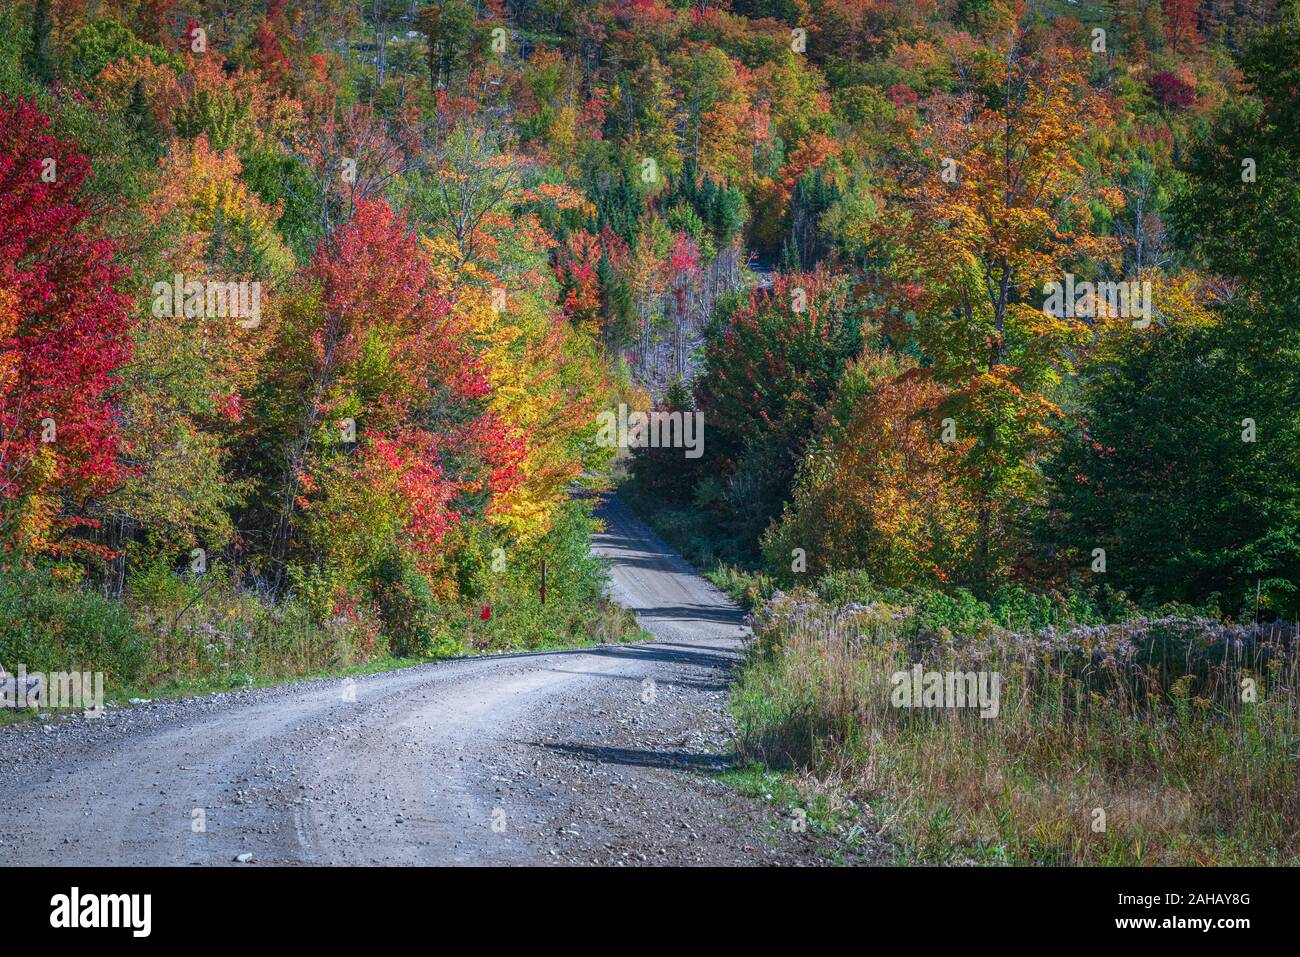 A curvy gravel road leds dow a hill into a colorful mountain forest. Stock Photo